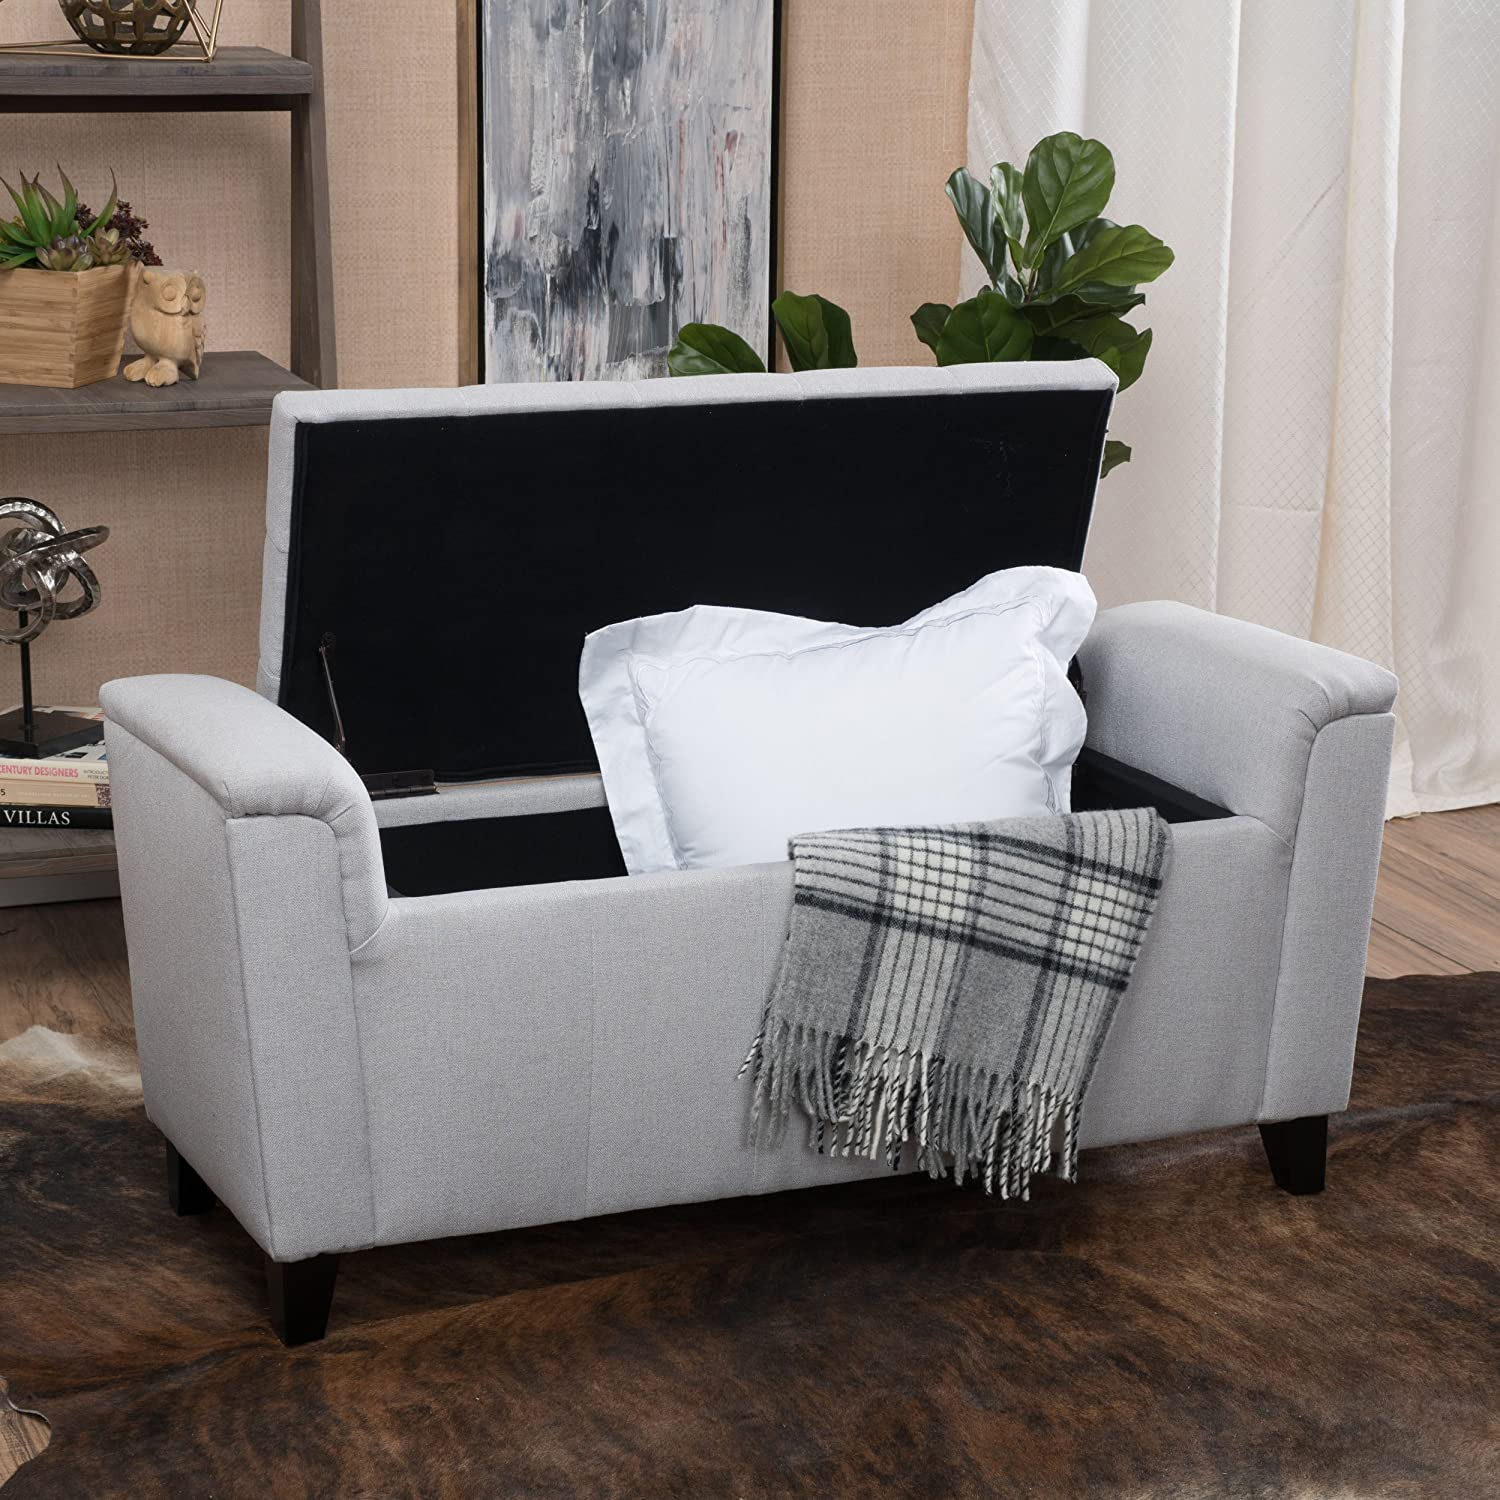 Christopher Knight Home 296766 Living Arthur Light Grey Tufted Fabric Armed Storage Ottoman Bench Great Deal Furniture